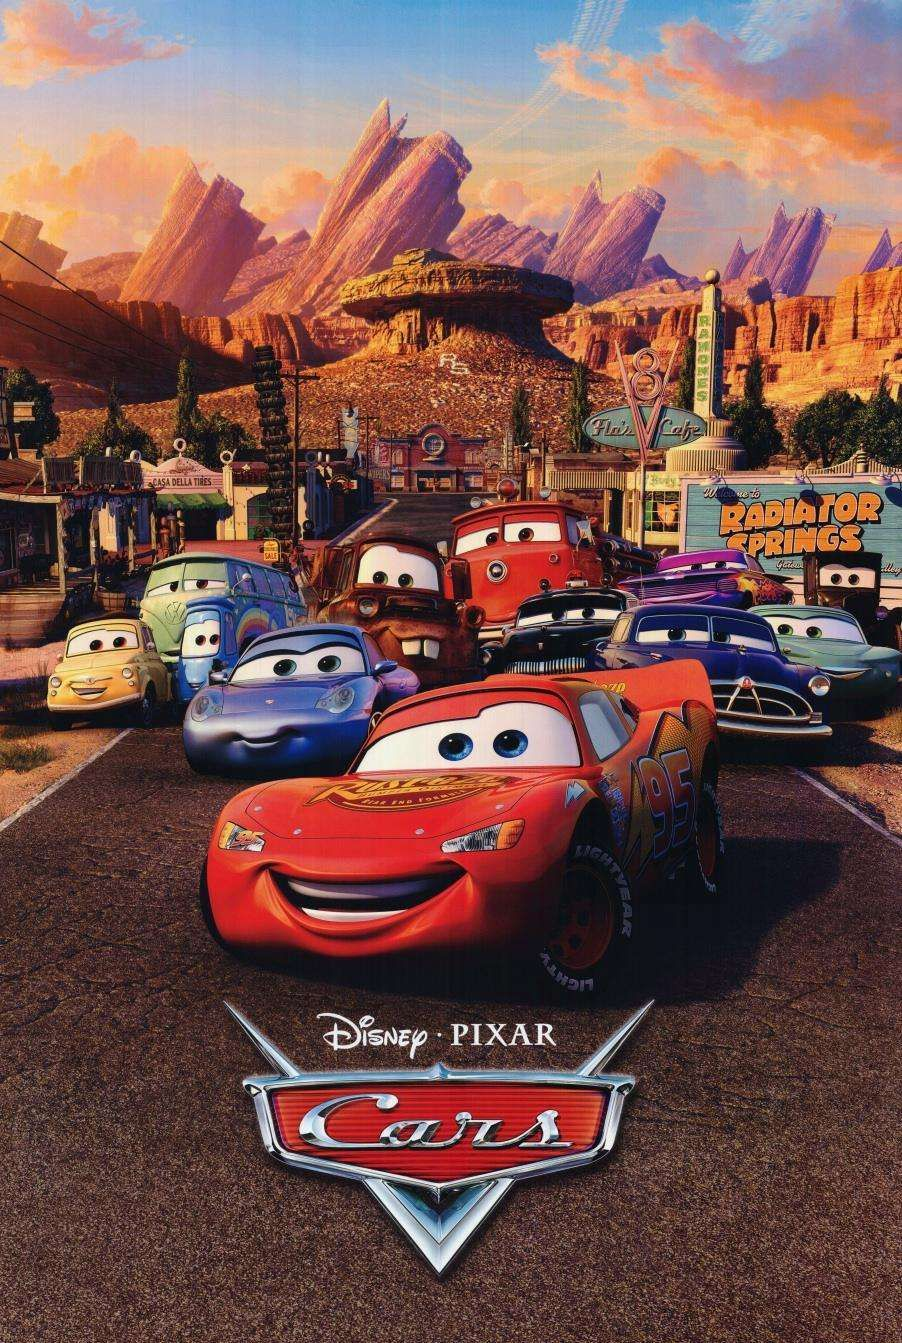 The Car (1977) - Watch Online Videos HD | Vidimovie |Cars Movie Poster Free Candy